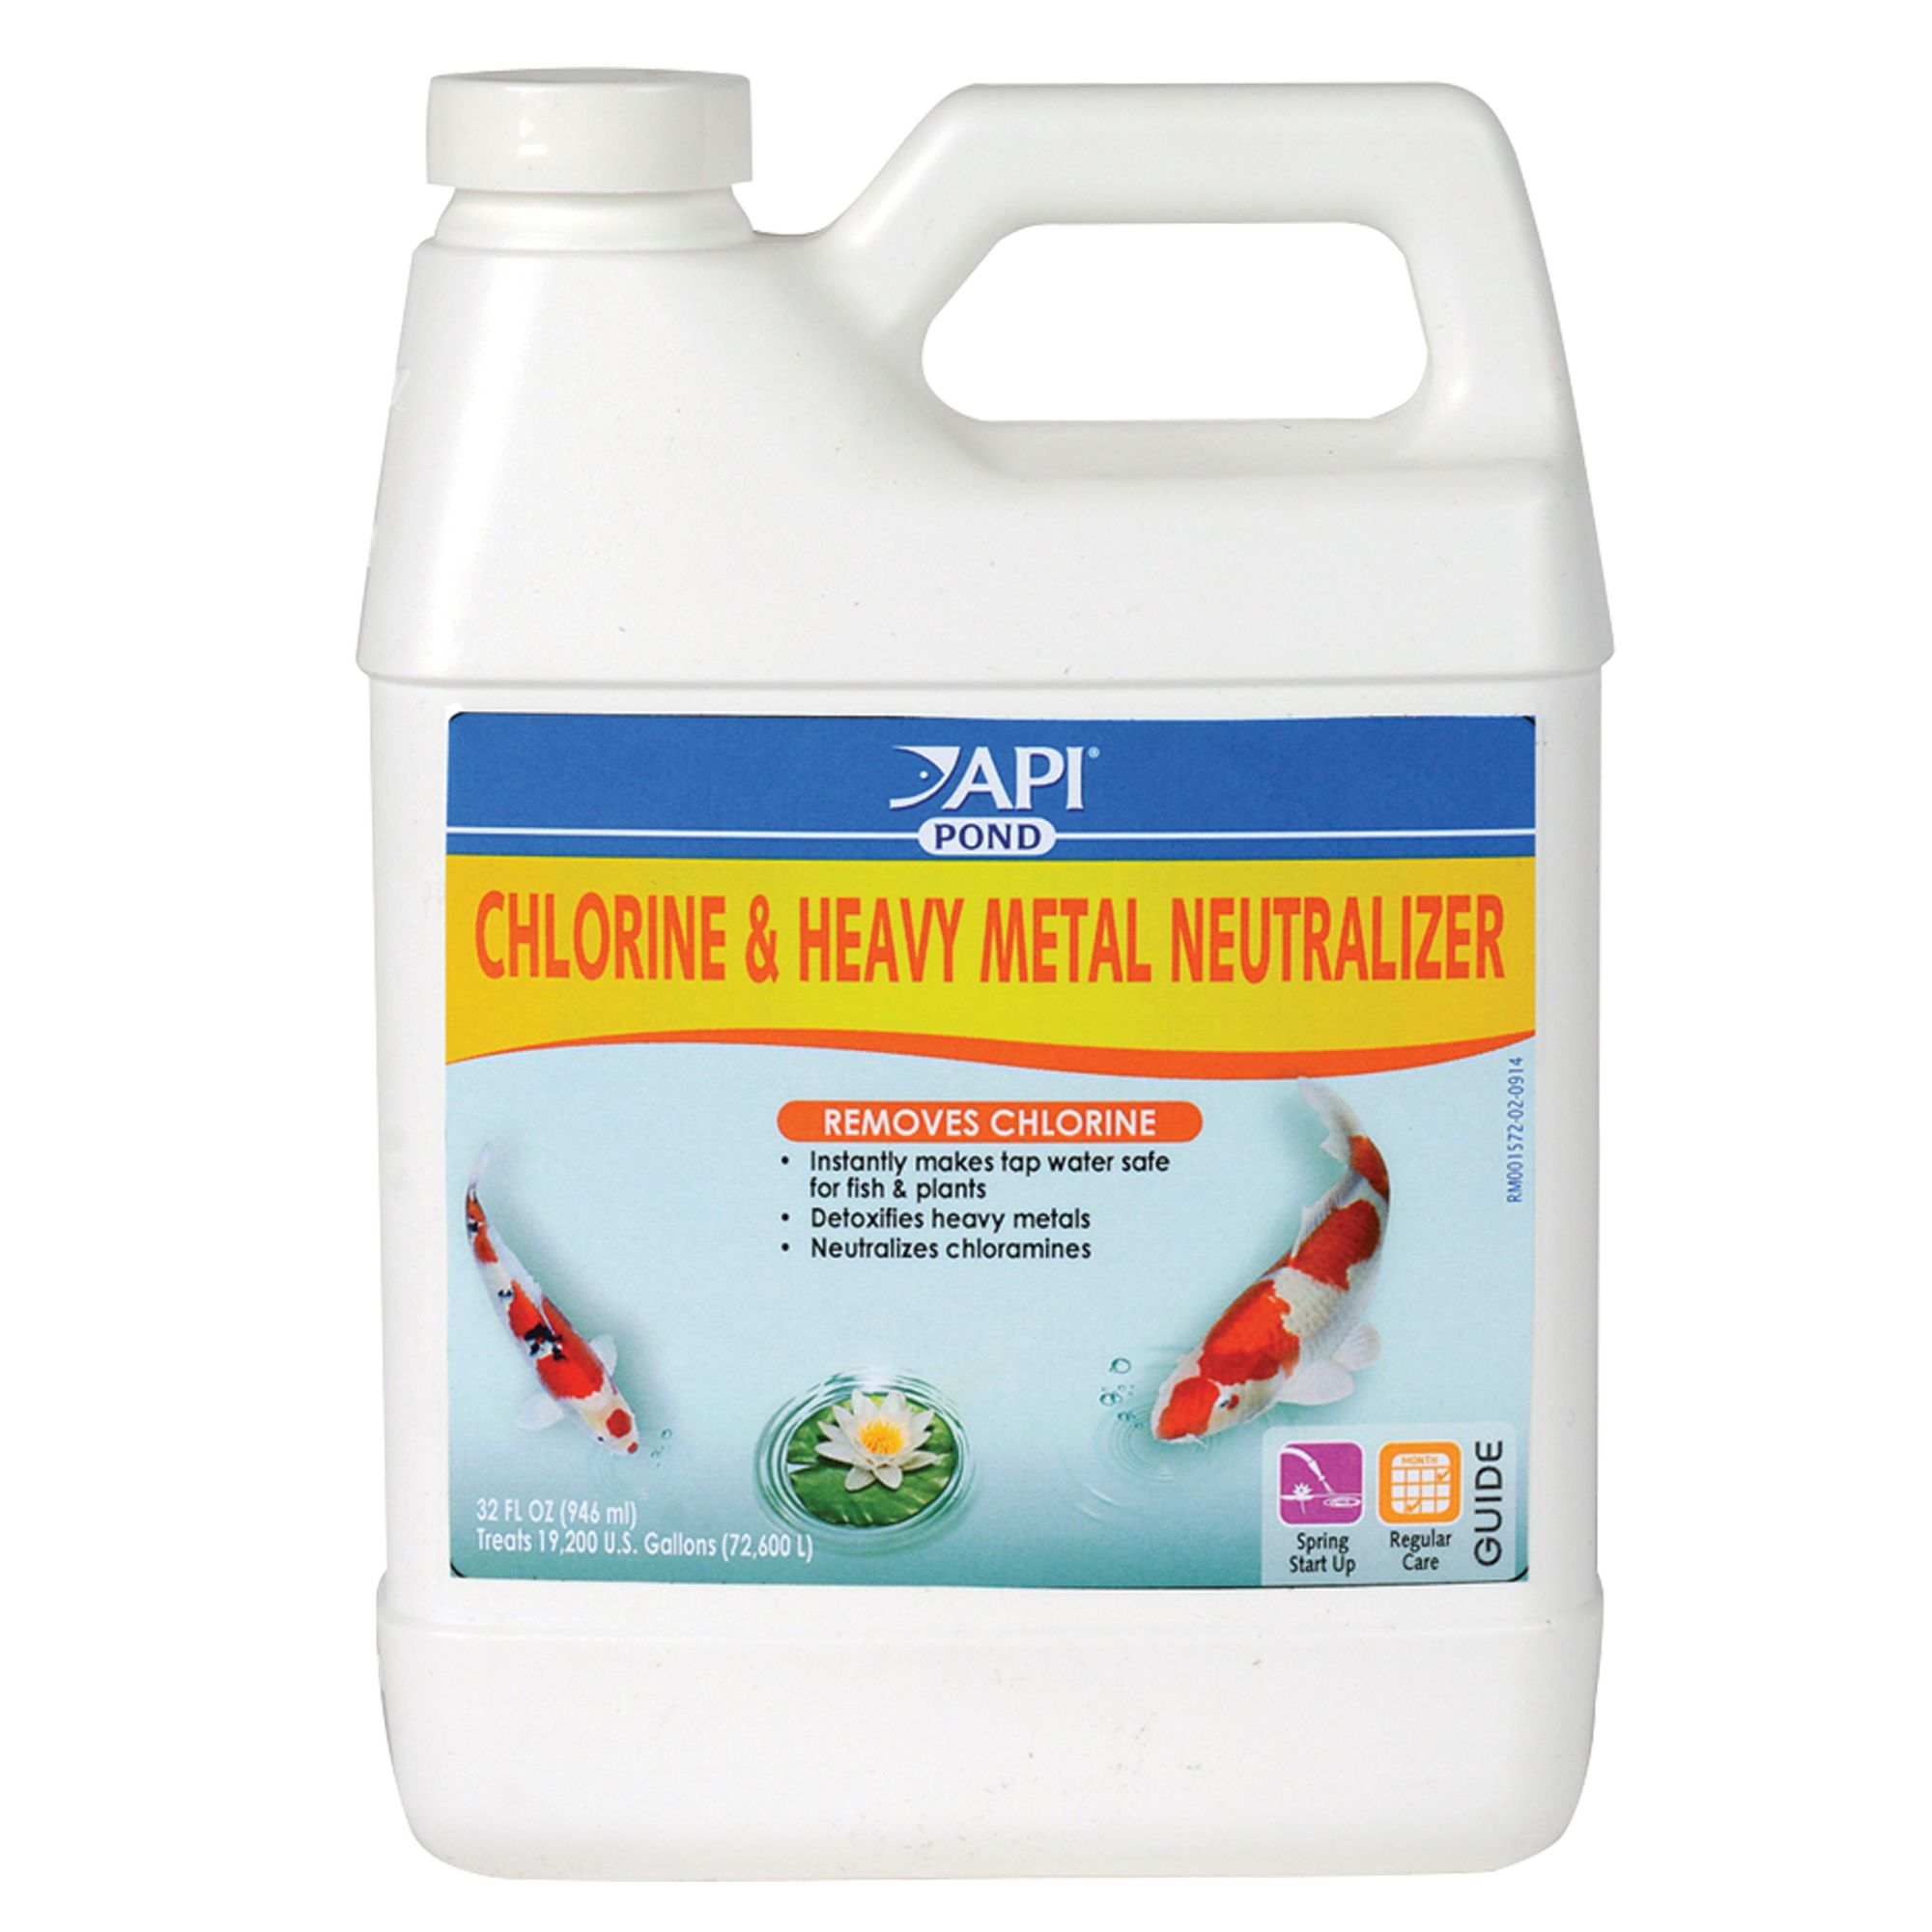 Api Pond Chlorine And Heavy Metal Neutralizer Size 32 Fl Oz